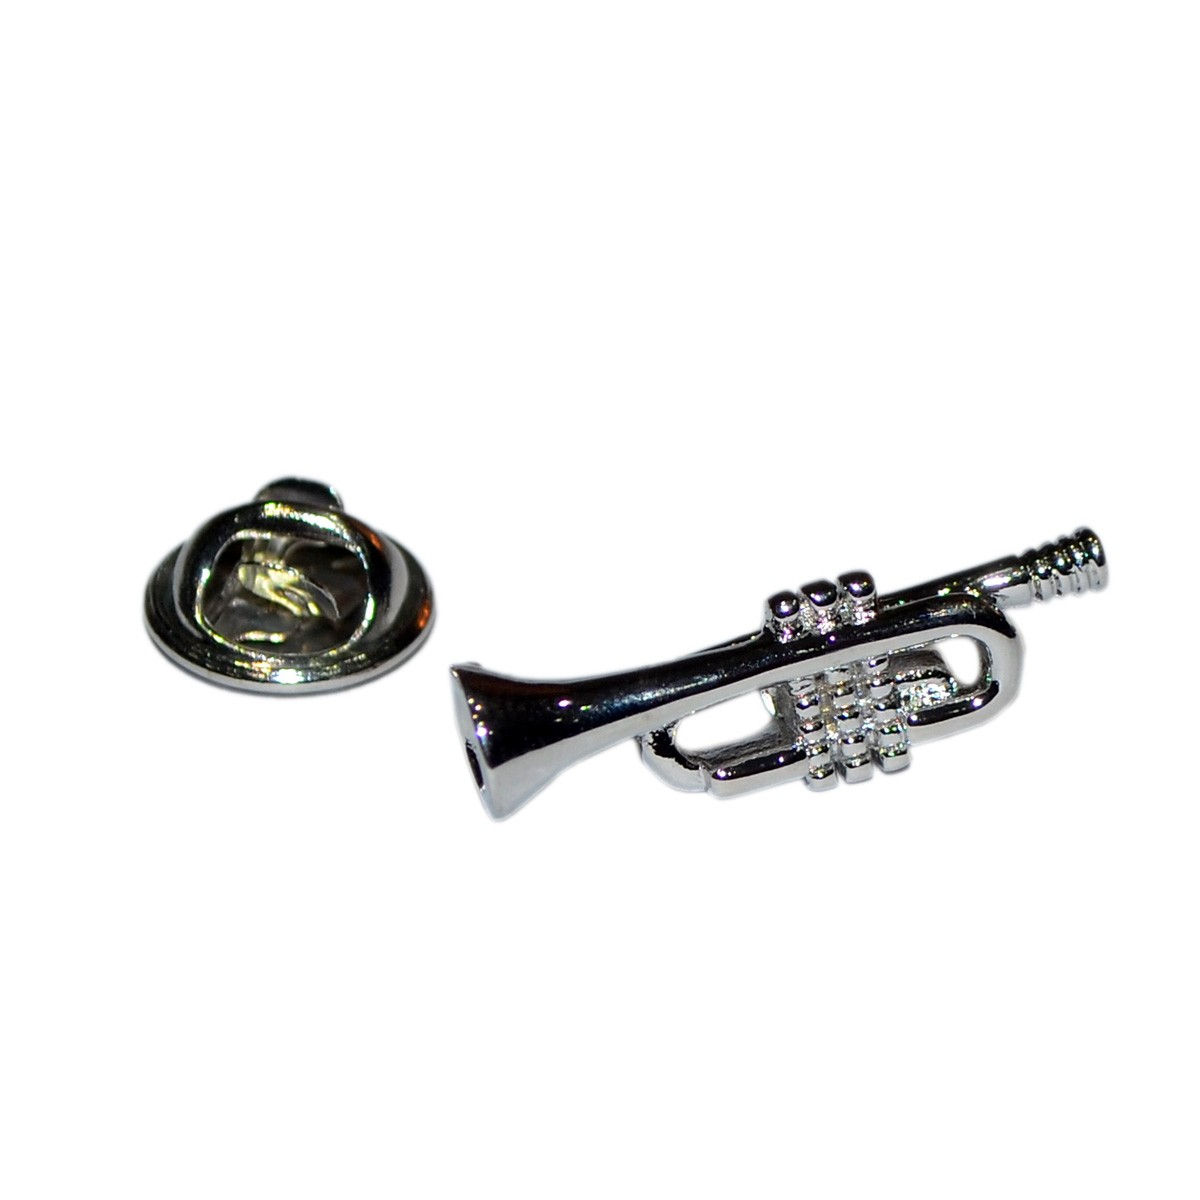 Pin Badge Trumpet Sparkle Gift